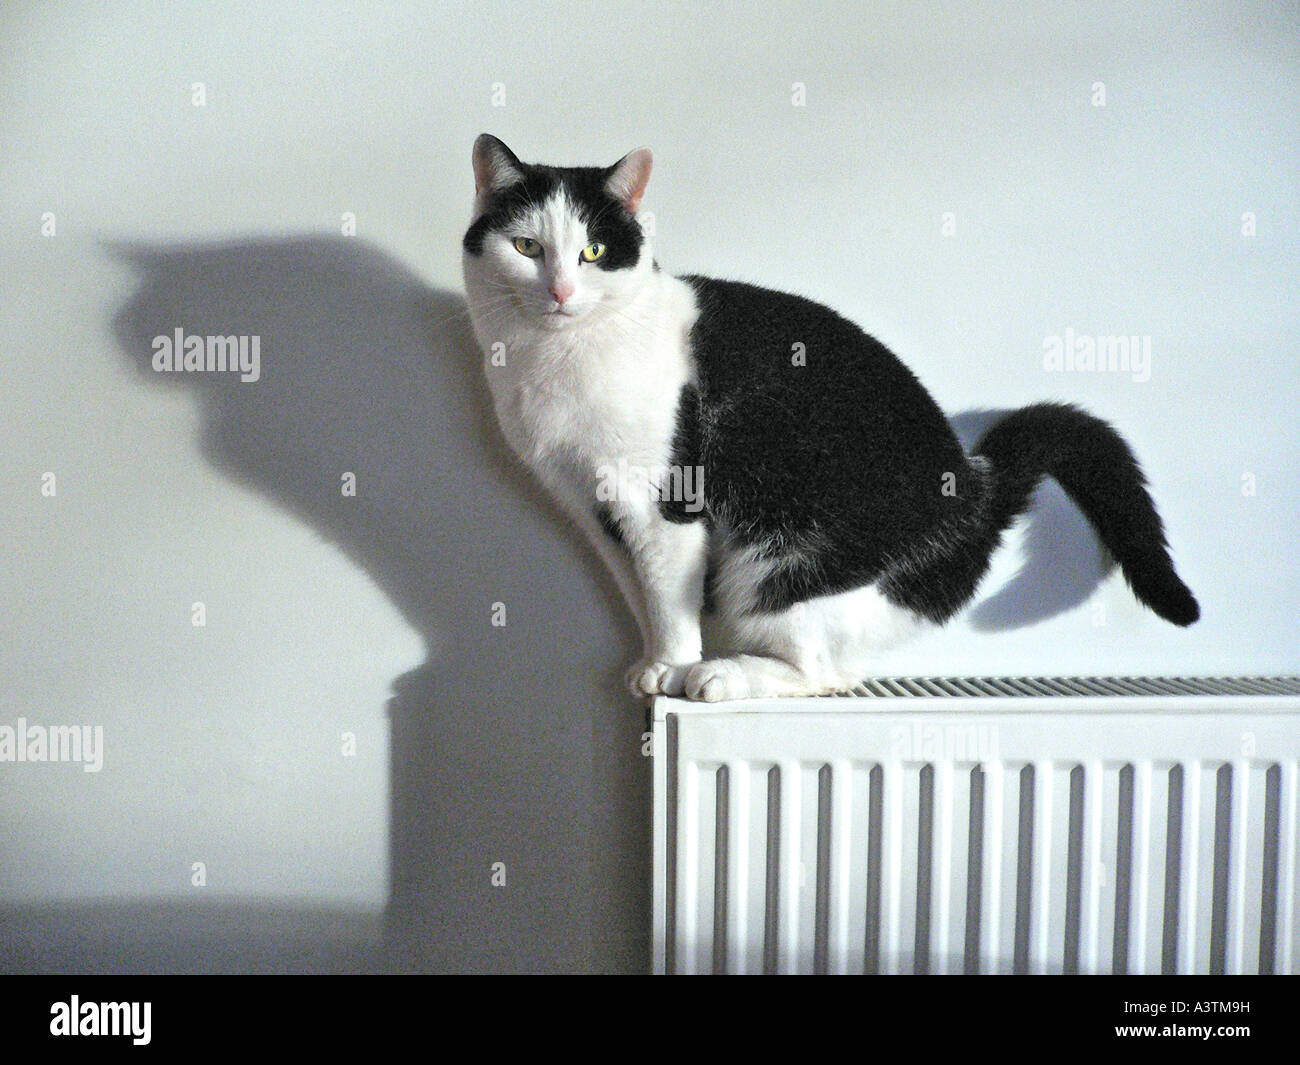 'non-pedigree' 'black and white' female cat sitting on a domestic radiator  casting a shadow Wiltshire - Stock Image